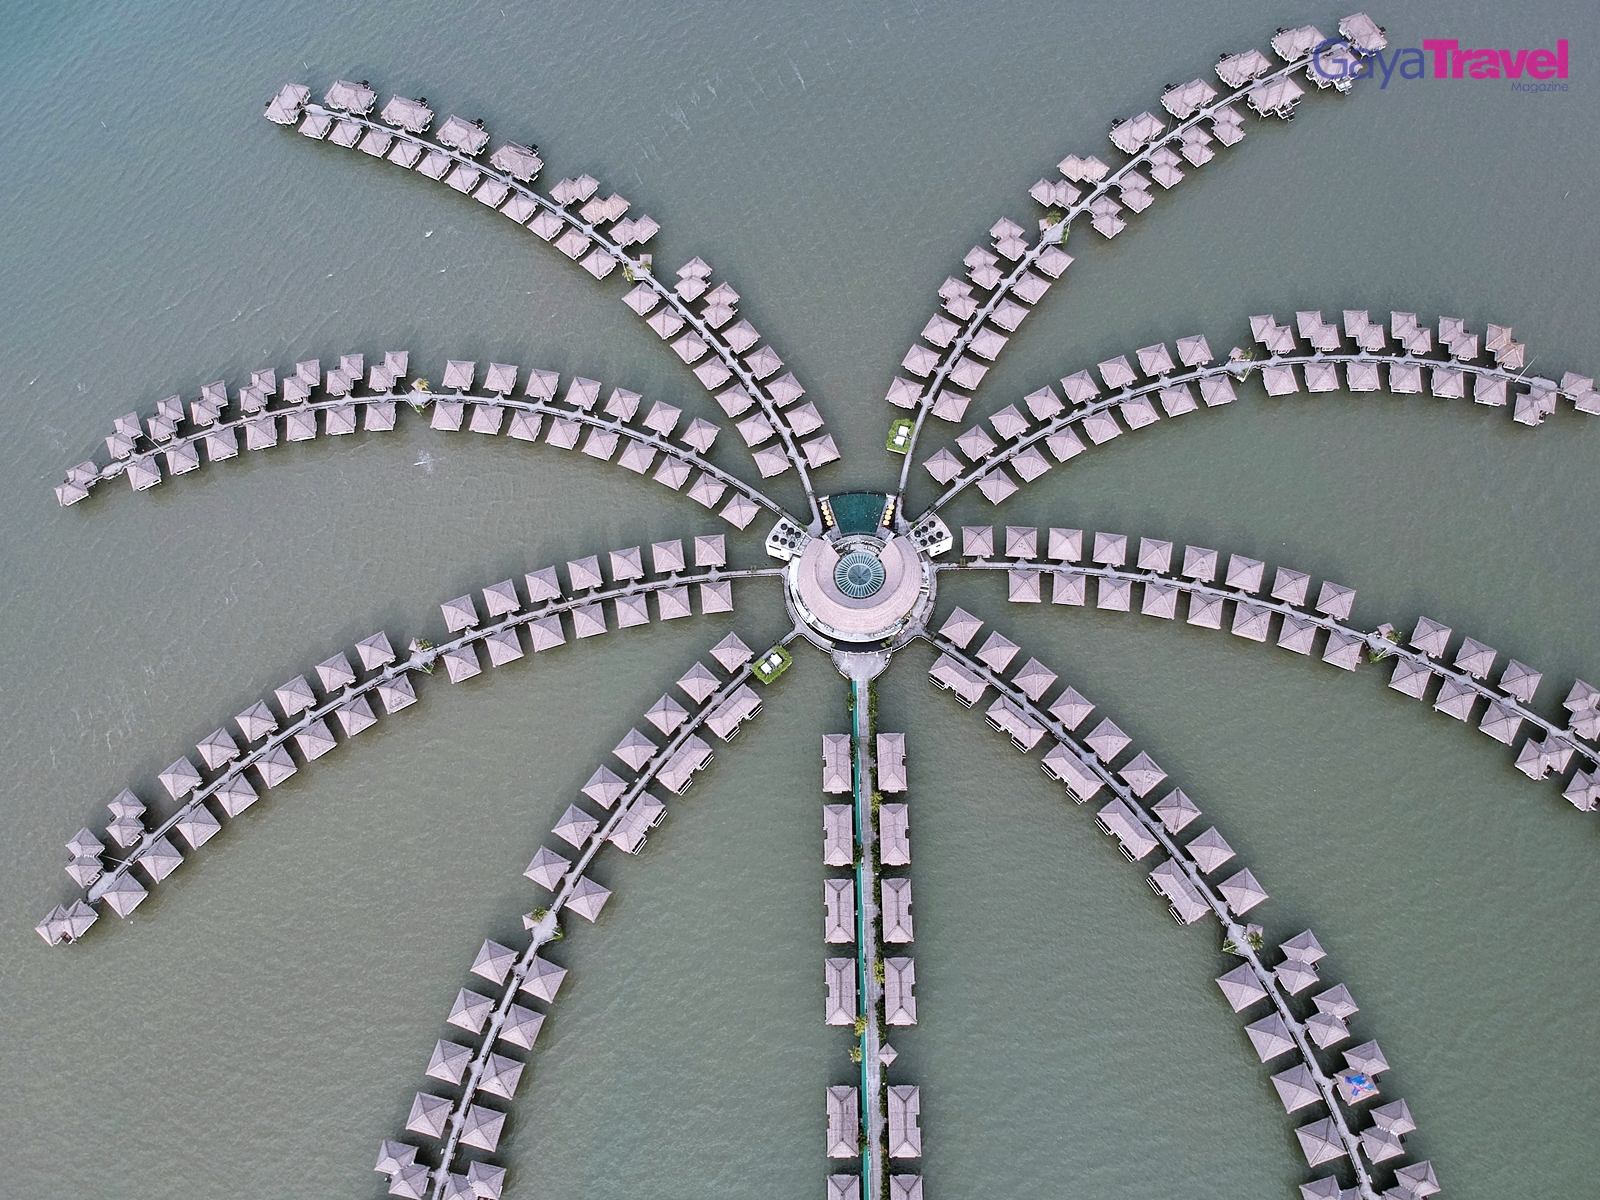 View of Avani Sepang Goldcoast Resort from above which resembles the shape of a water-palm tree.